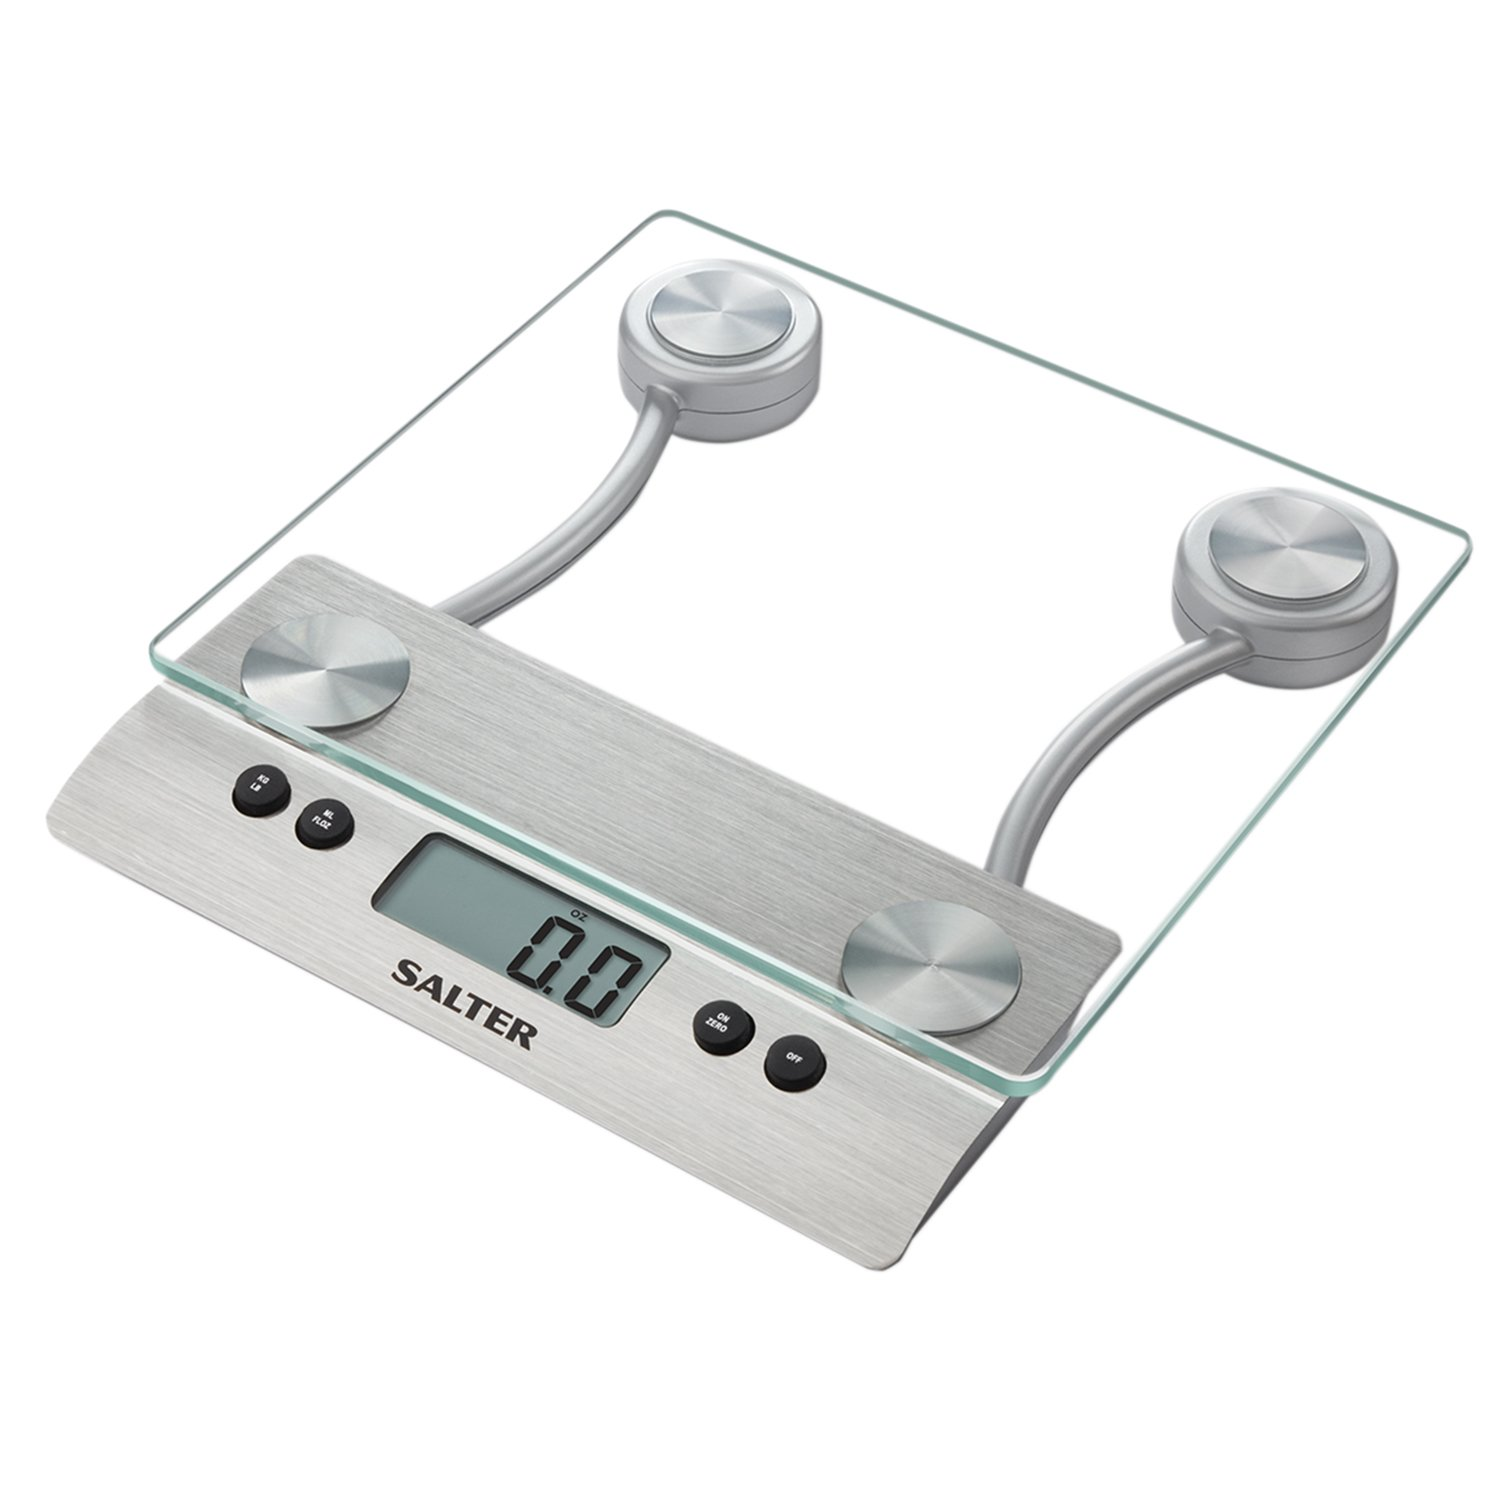 amazon com salter aquatronic glass electronic kitchen scale rh amazon com